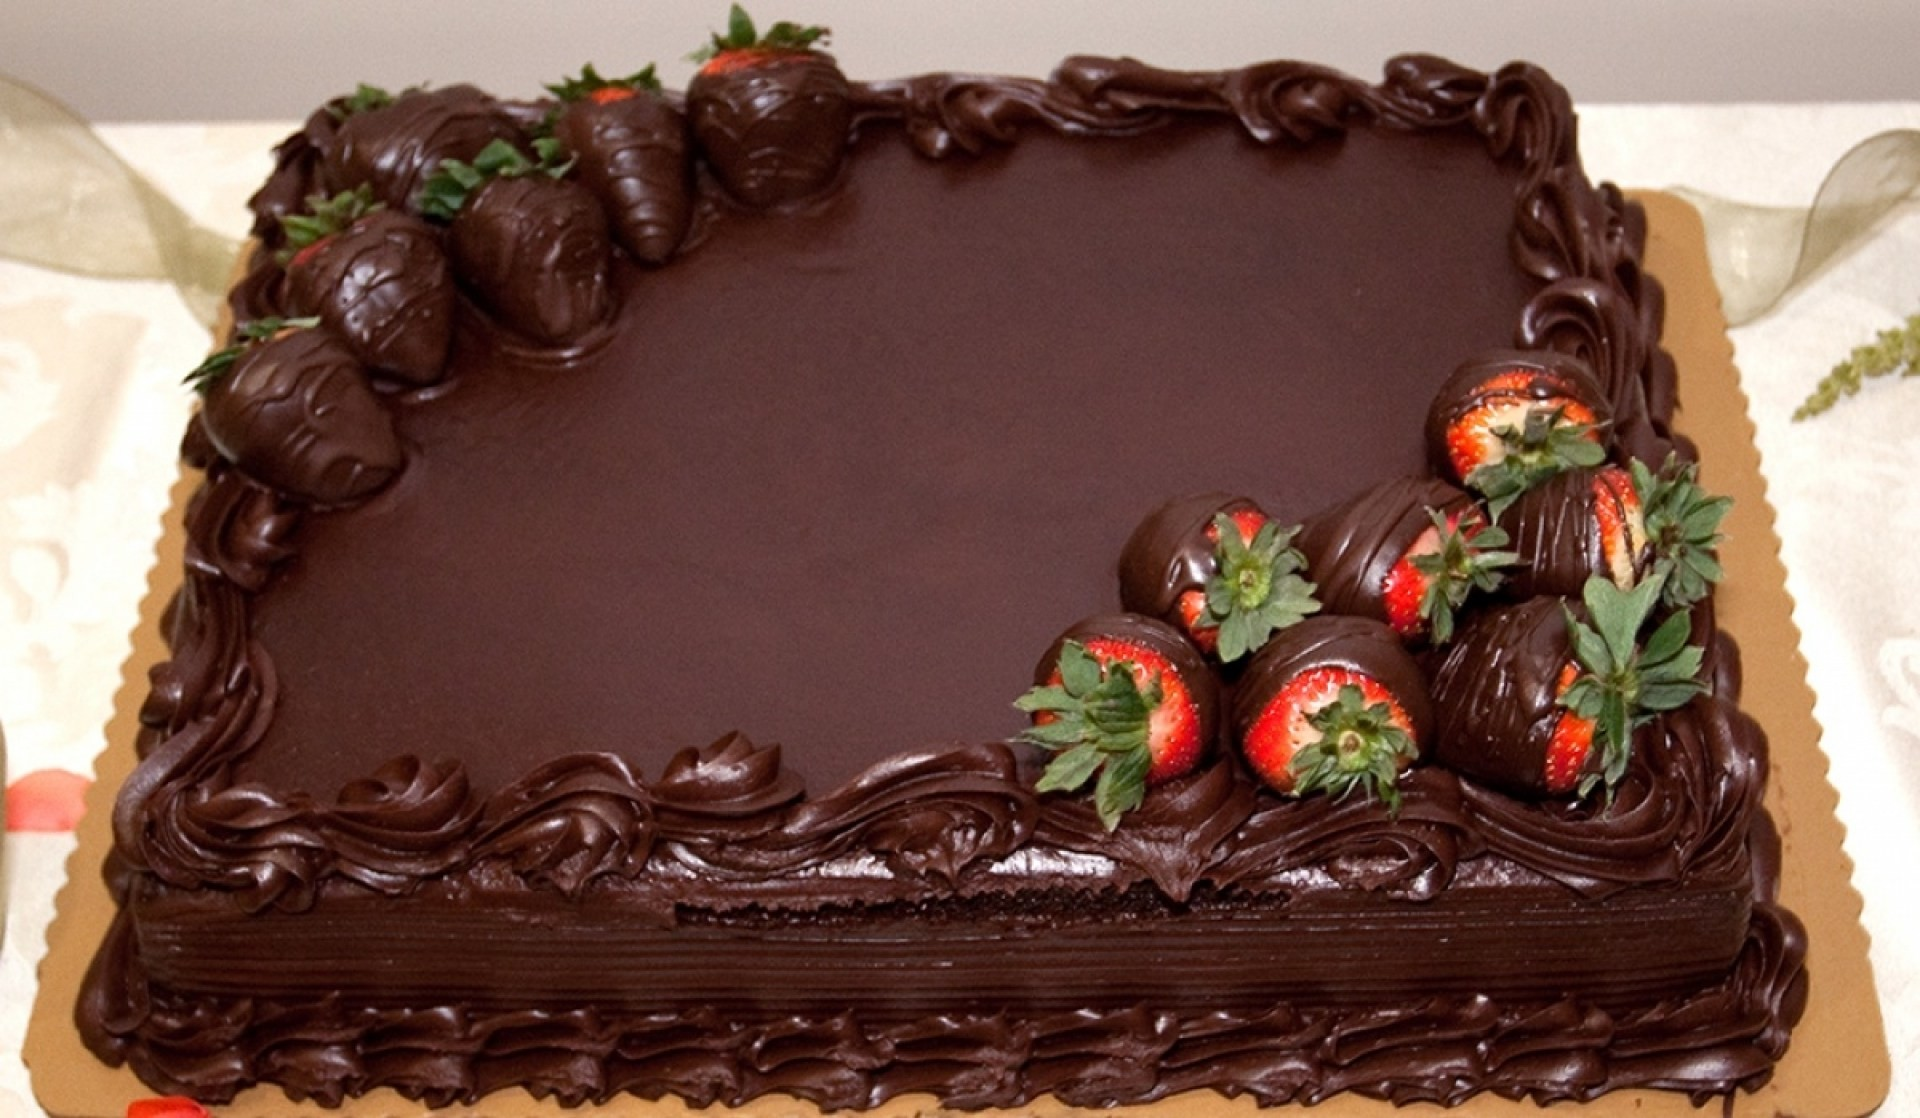 1920x1118 Photos of happy birthday big chocolate cake images desktop wallpapers hd.